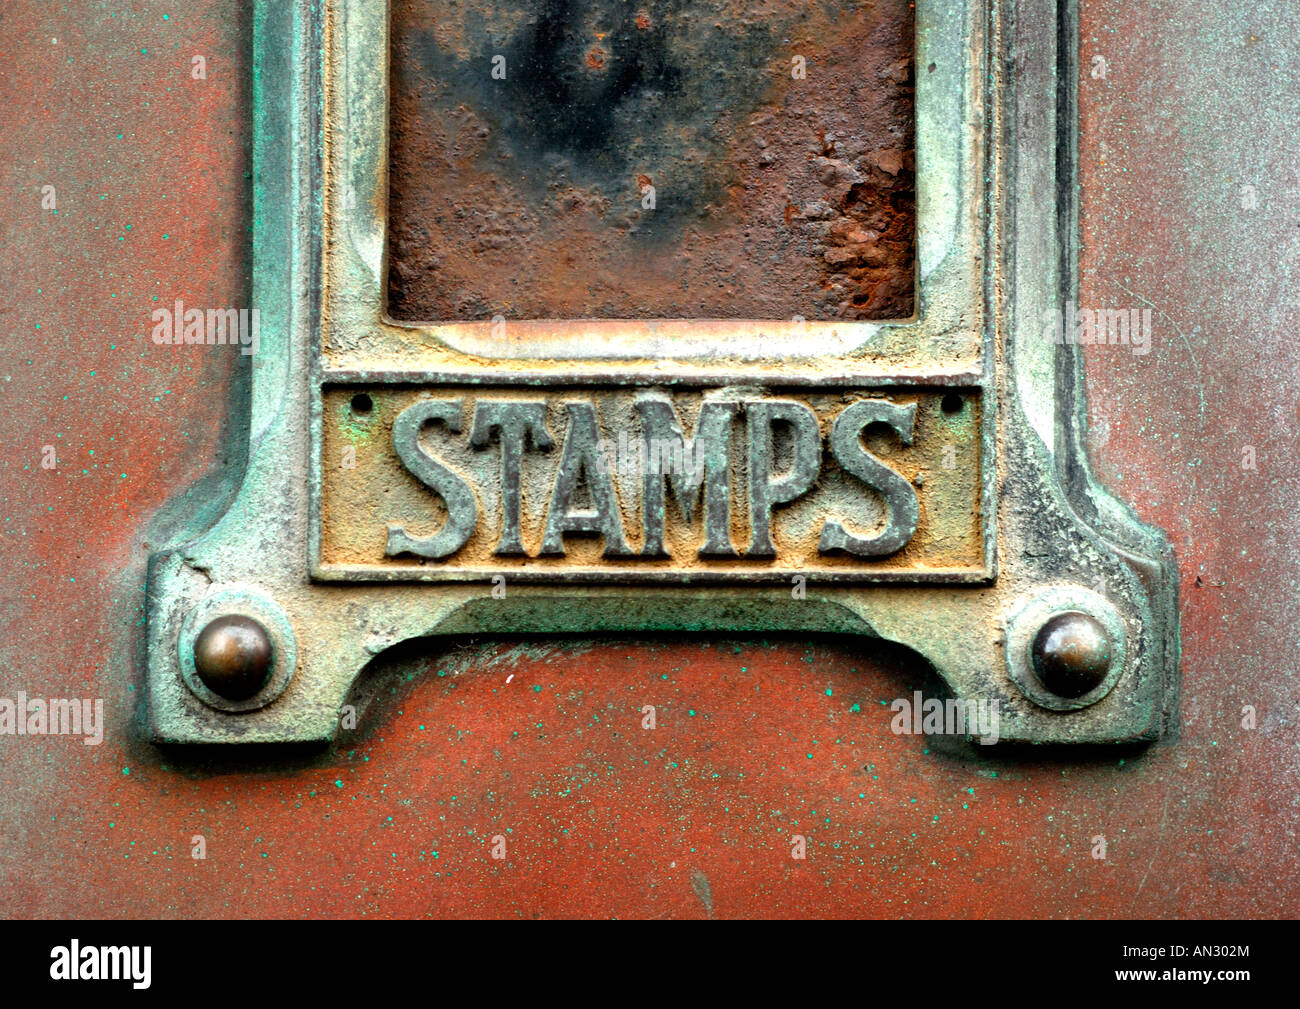 A Stamp Vending Machine Svm Sits Boarded Up Outside A